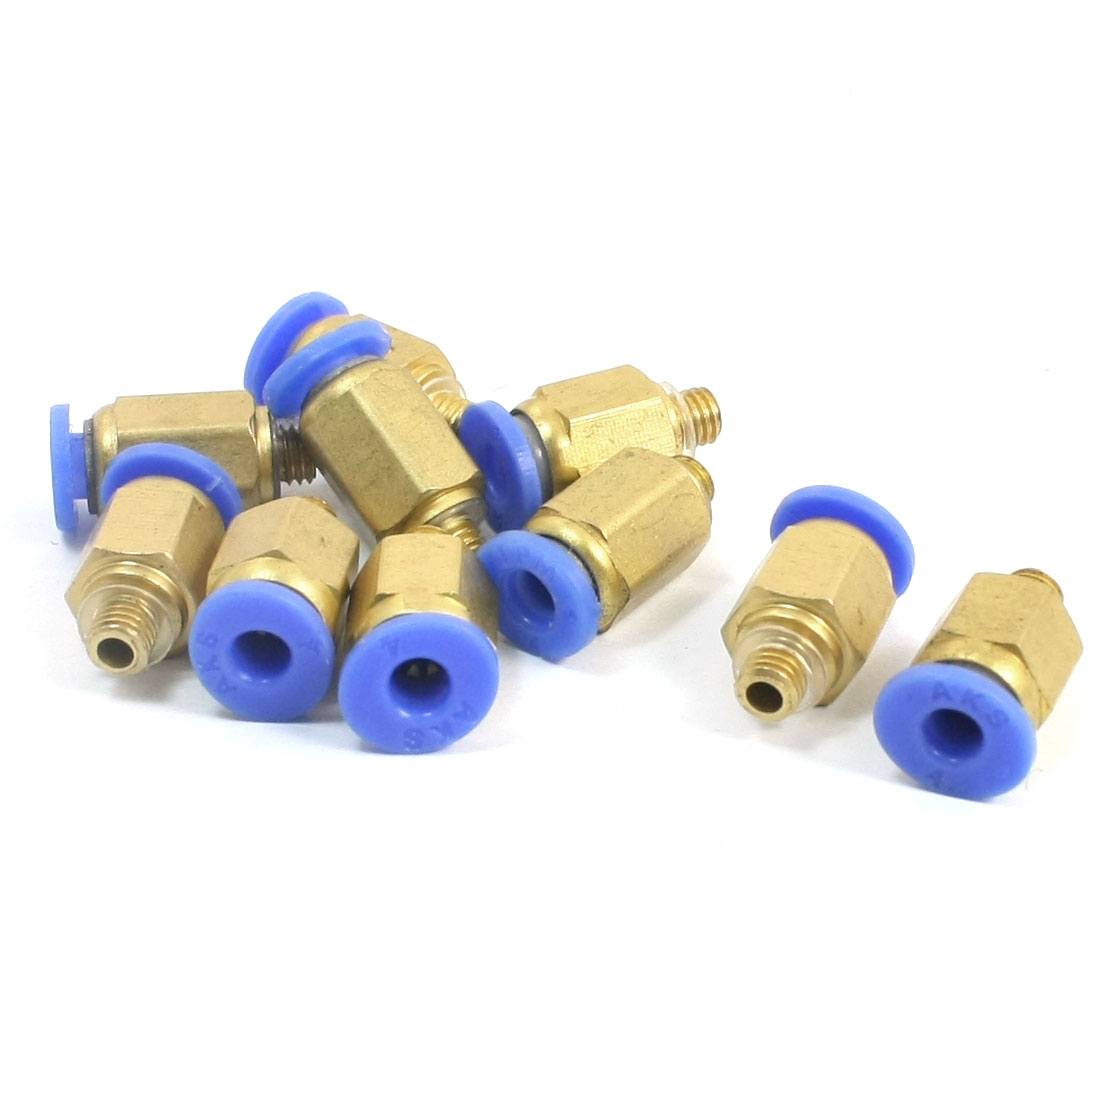 10pcs M5 x 4mm Air Pneumatic Pipe Tube Straight Quick Coupler Fitting Connector